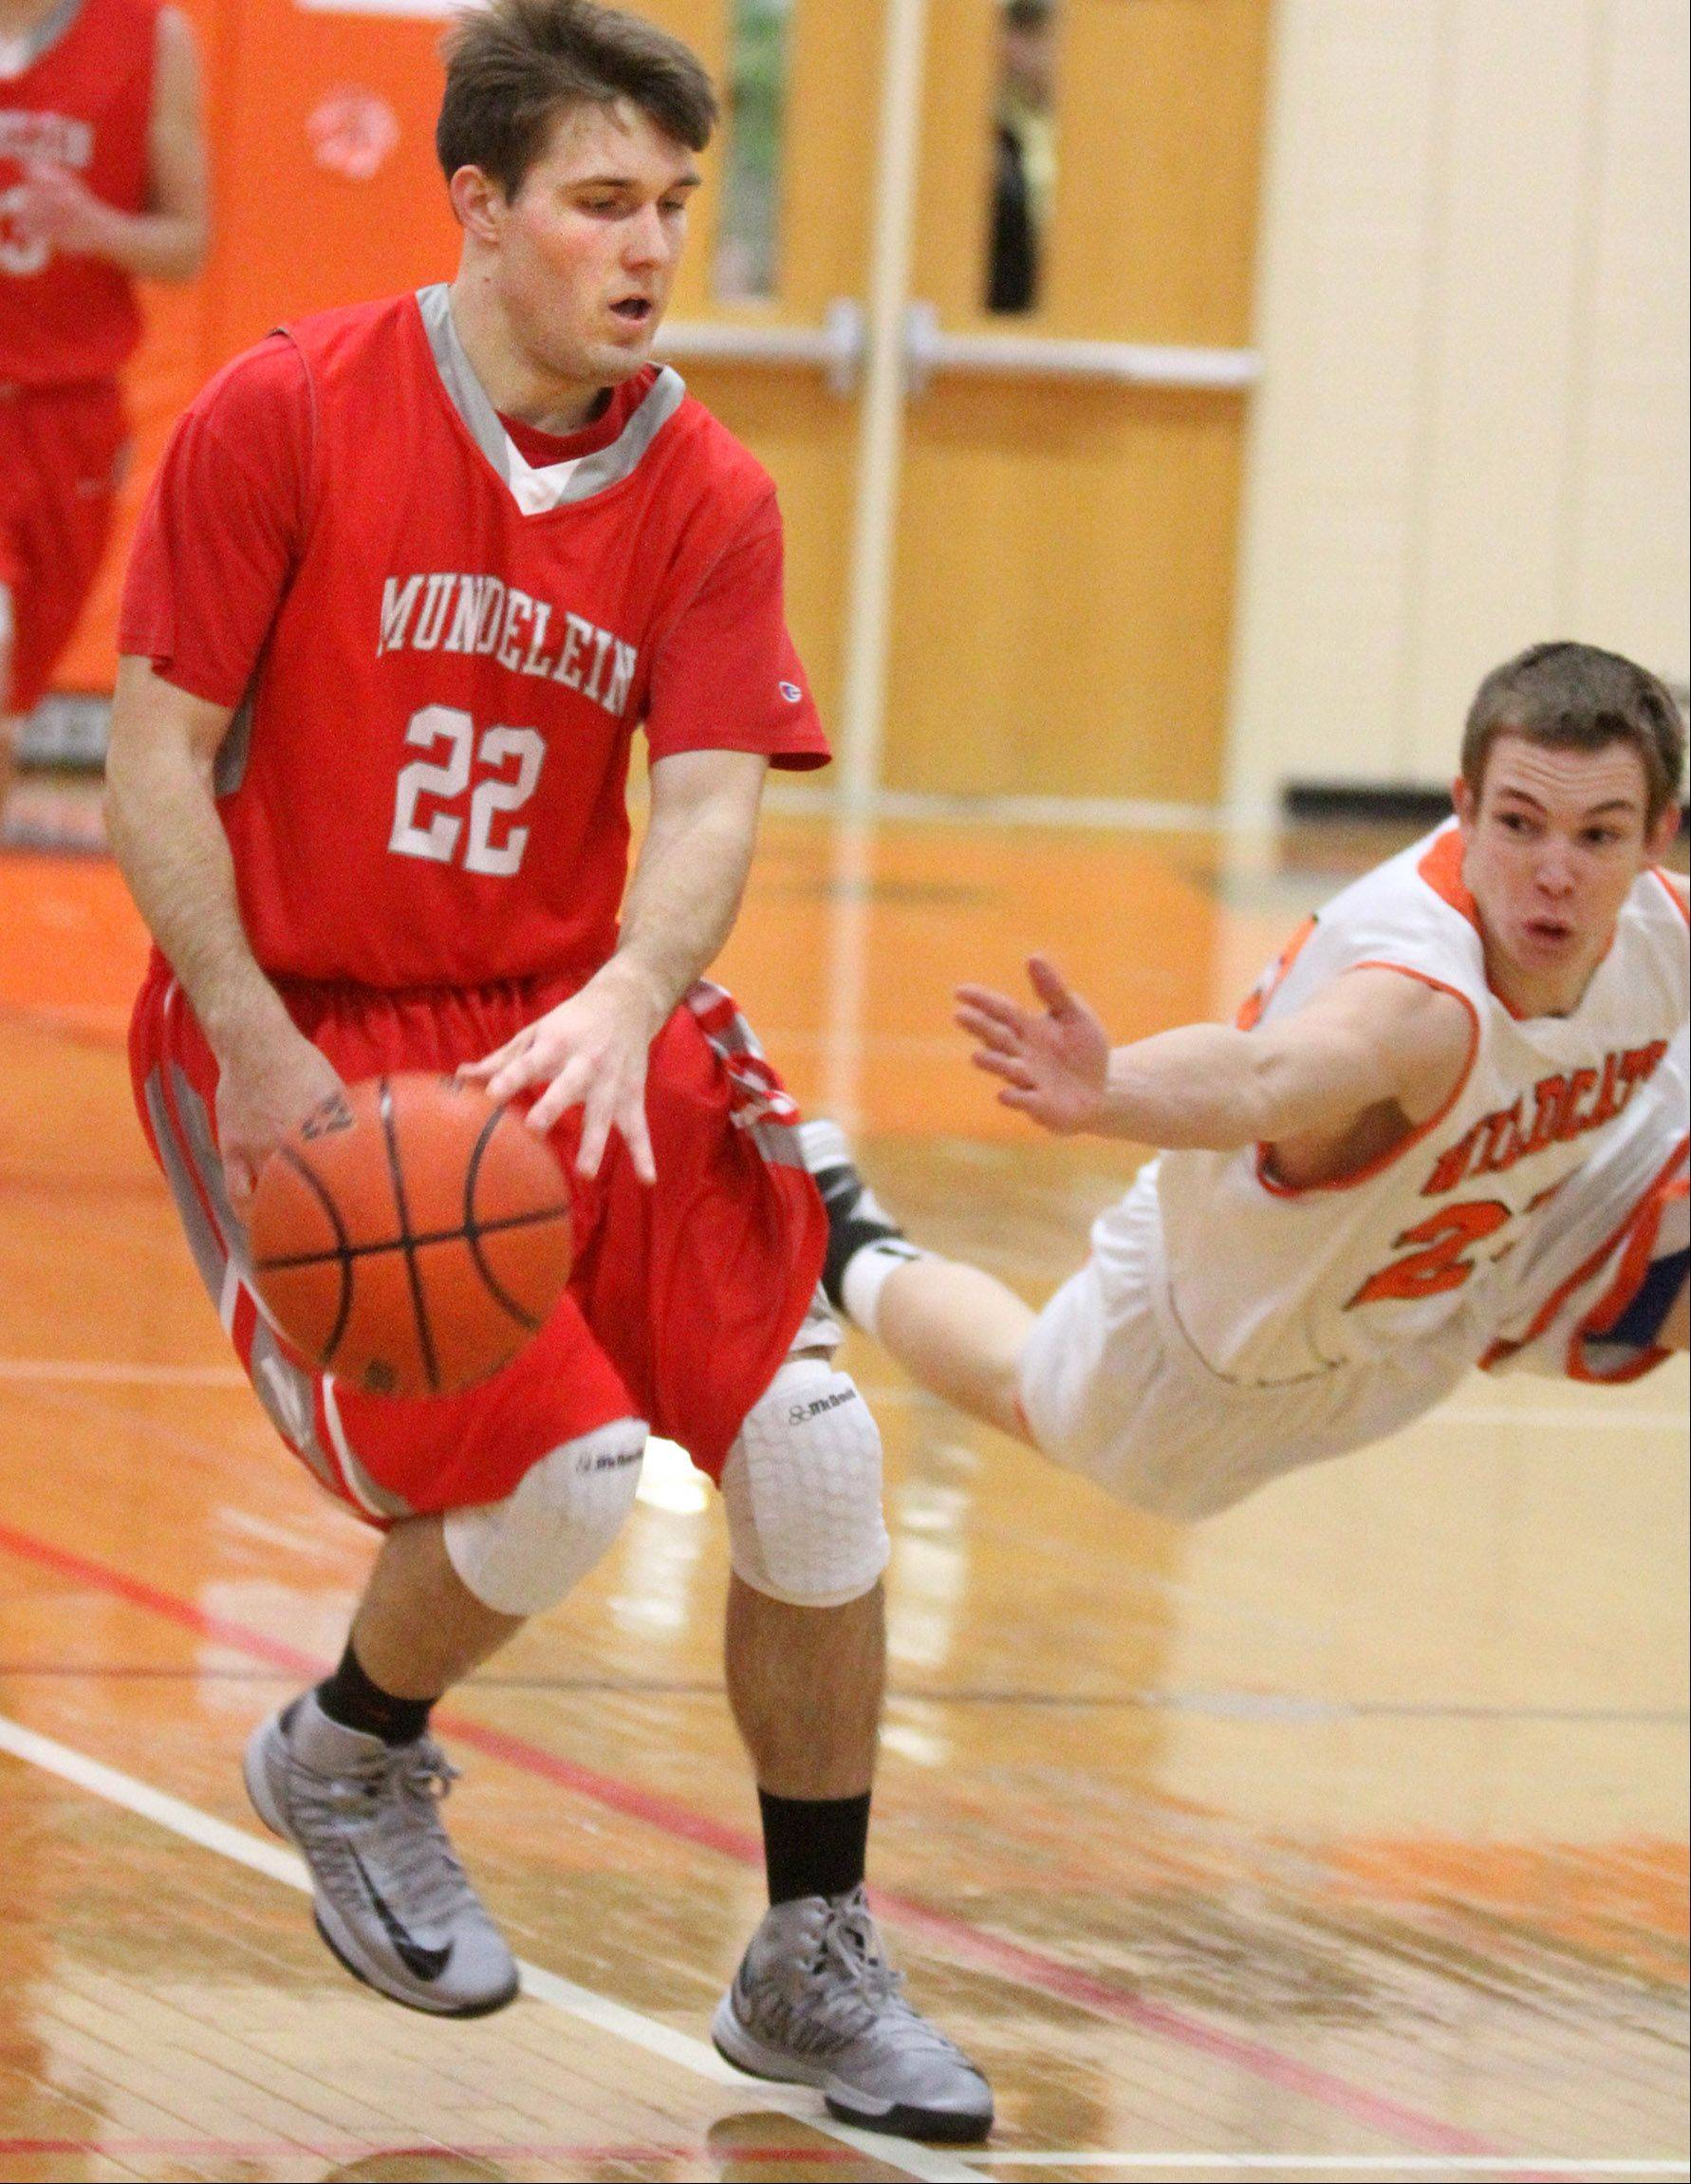 Mundelein guard Robert Knar pushes the ball past mid court as Libertyville defender Bryan Scanlan dives for the ball at Libertyville on Friday, February 8, 2013.